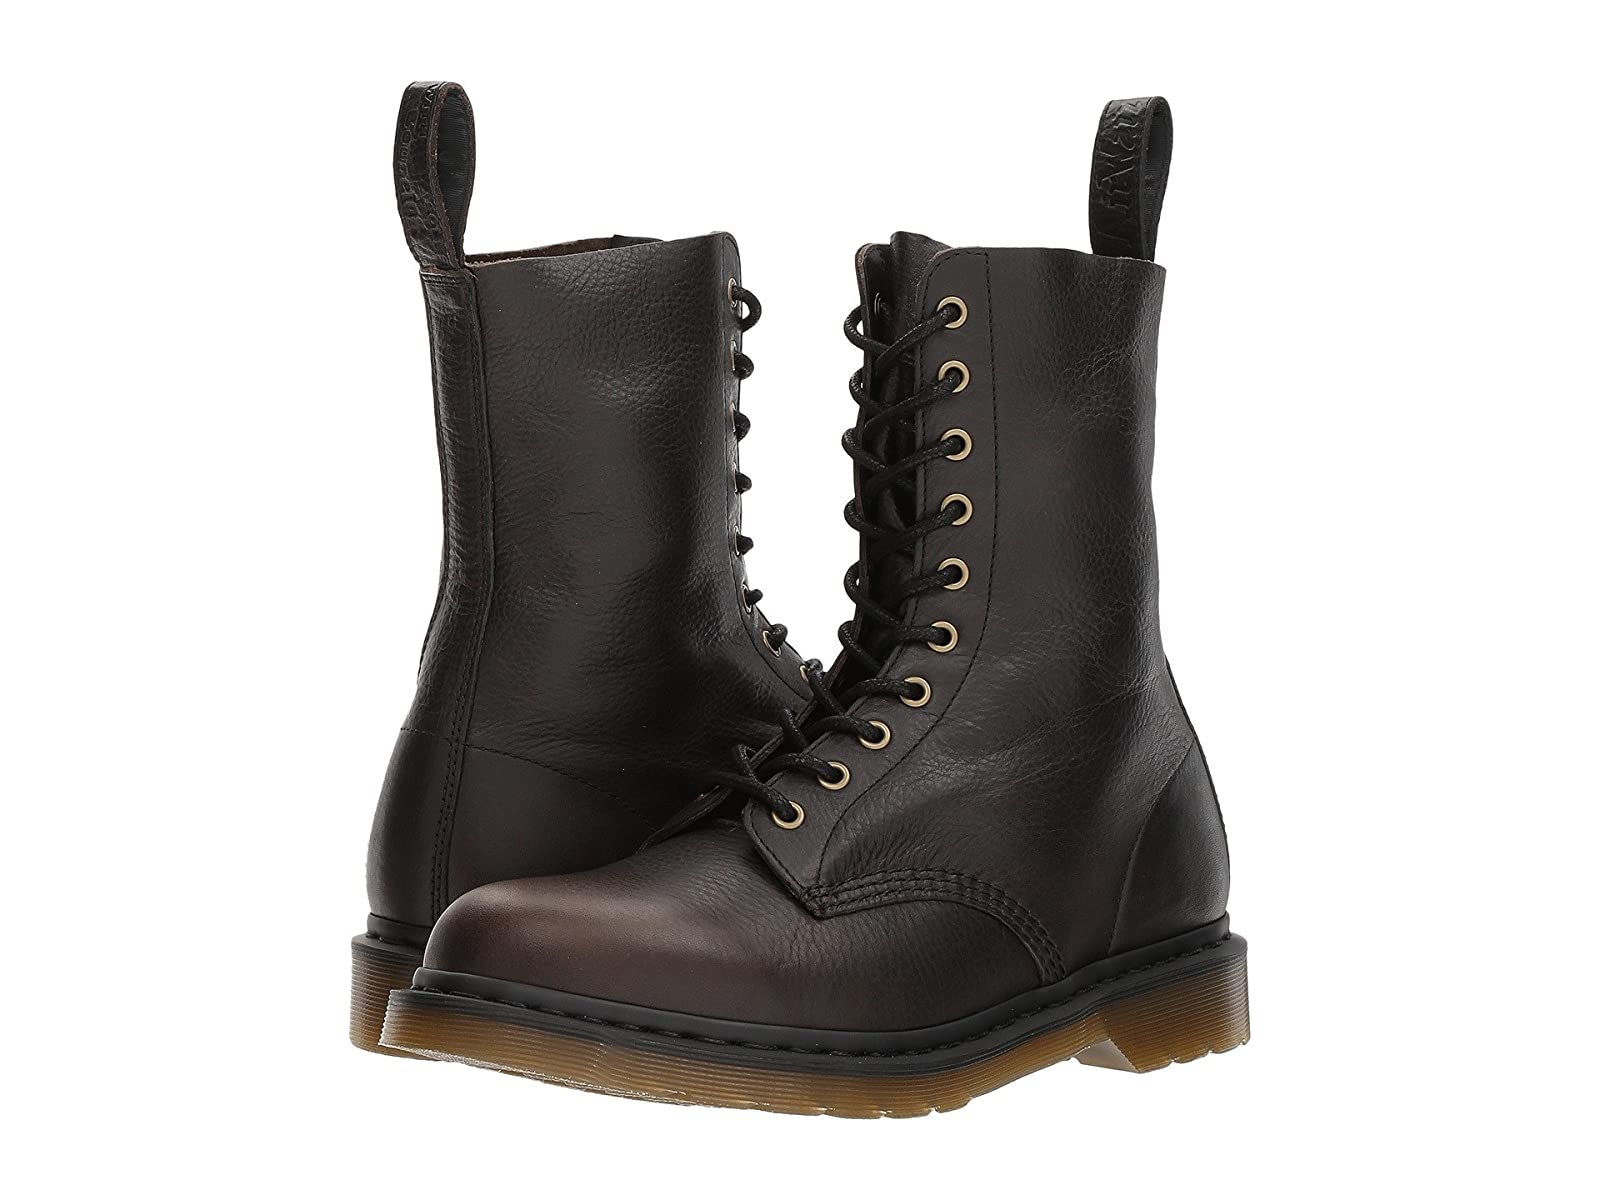 Dr. Martens 1490Cheap and distinctive eye-catching shoes